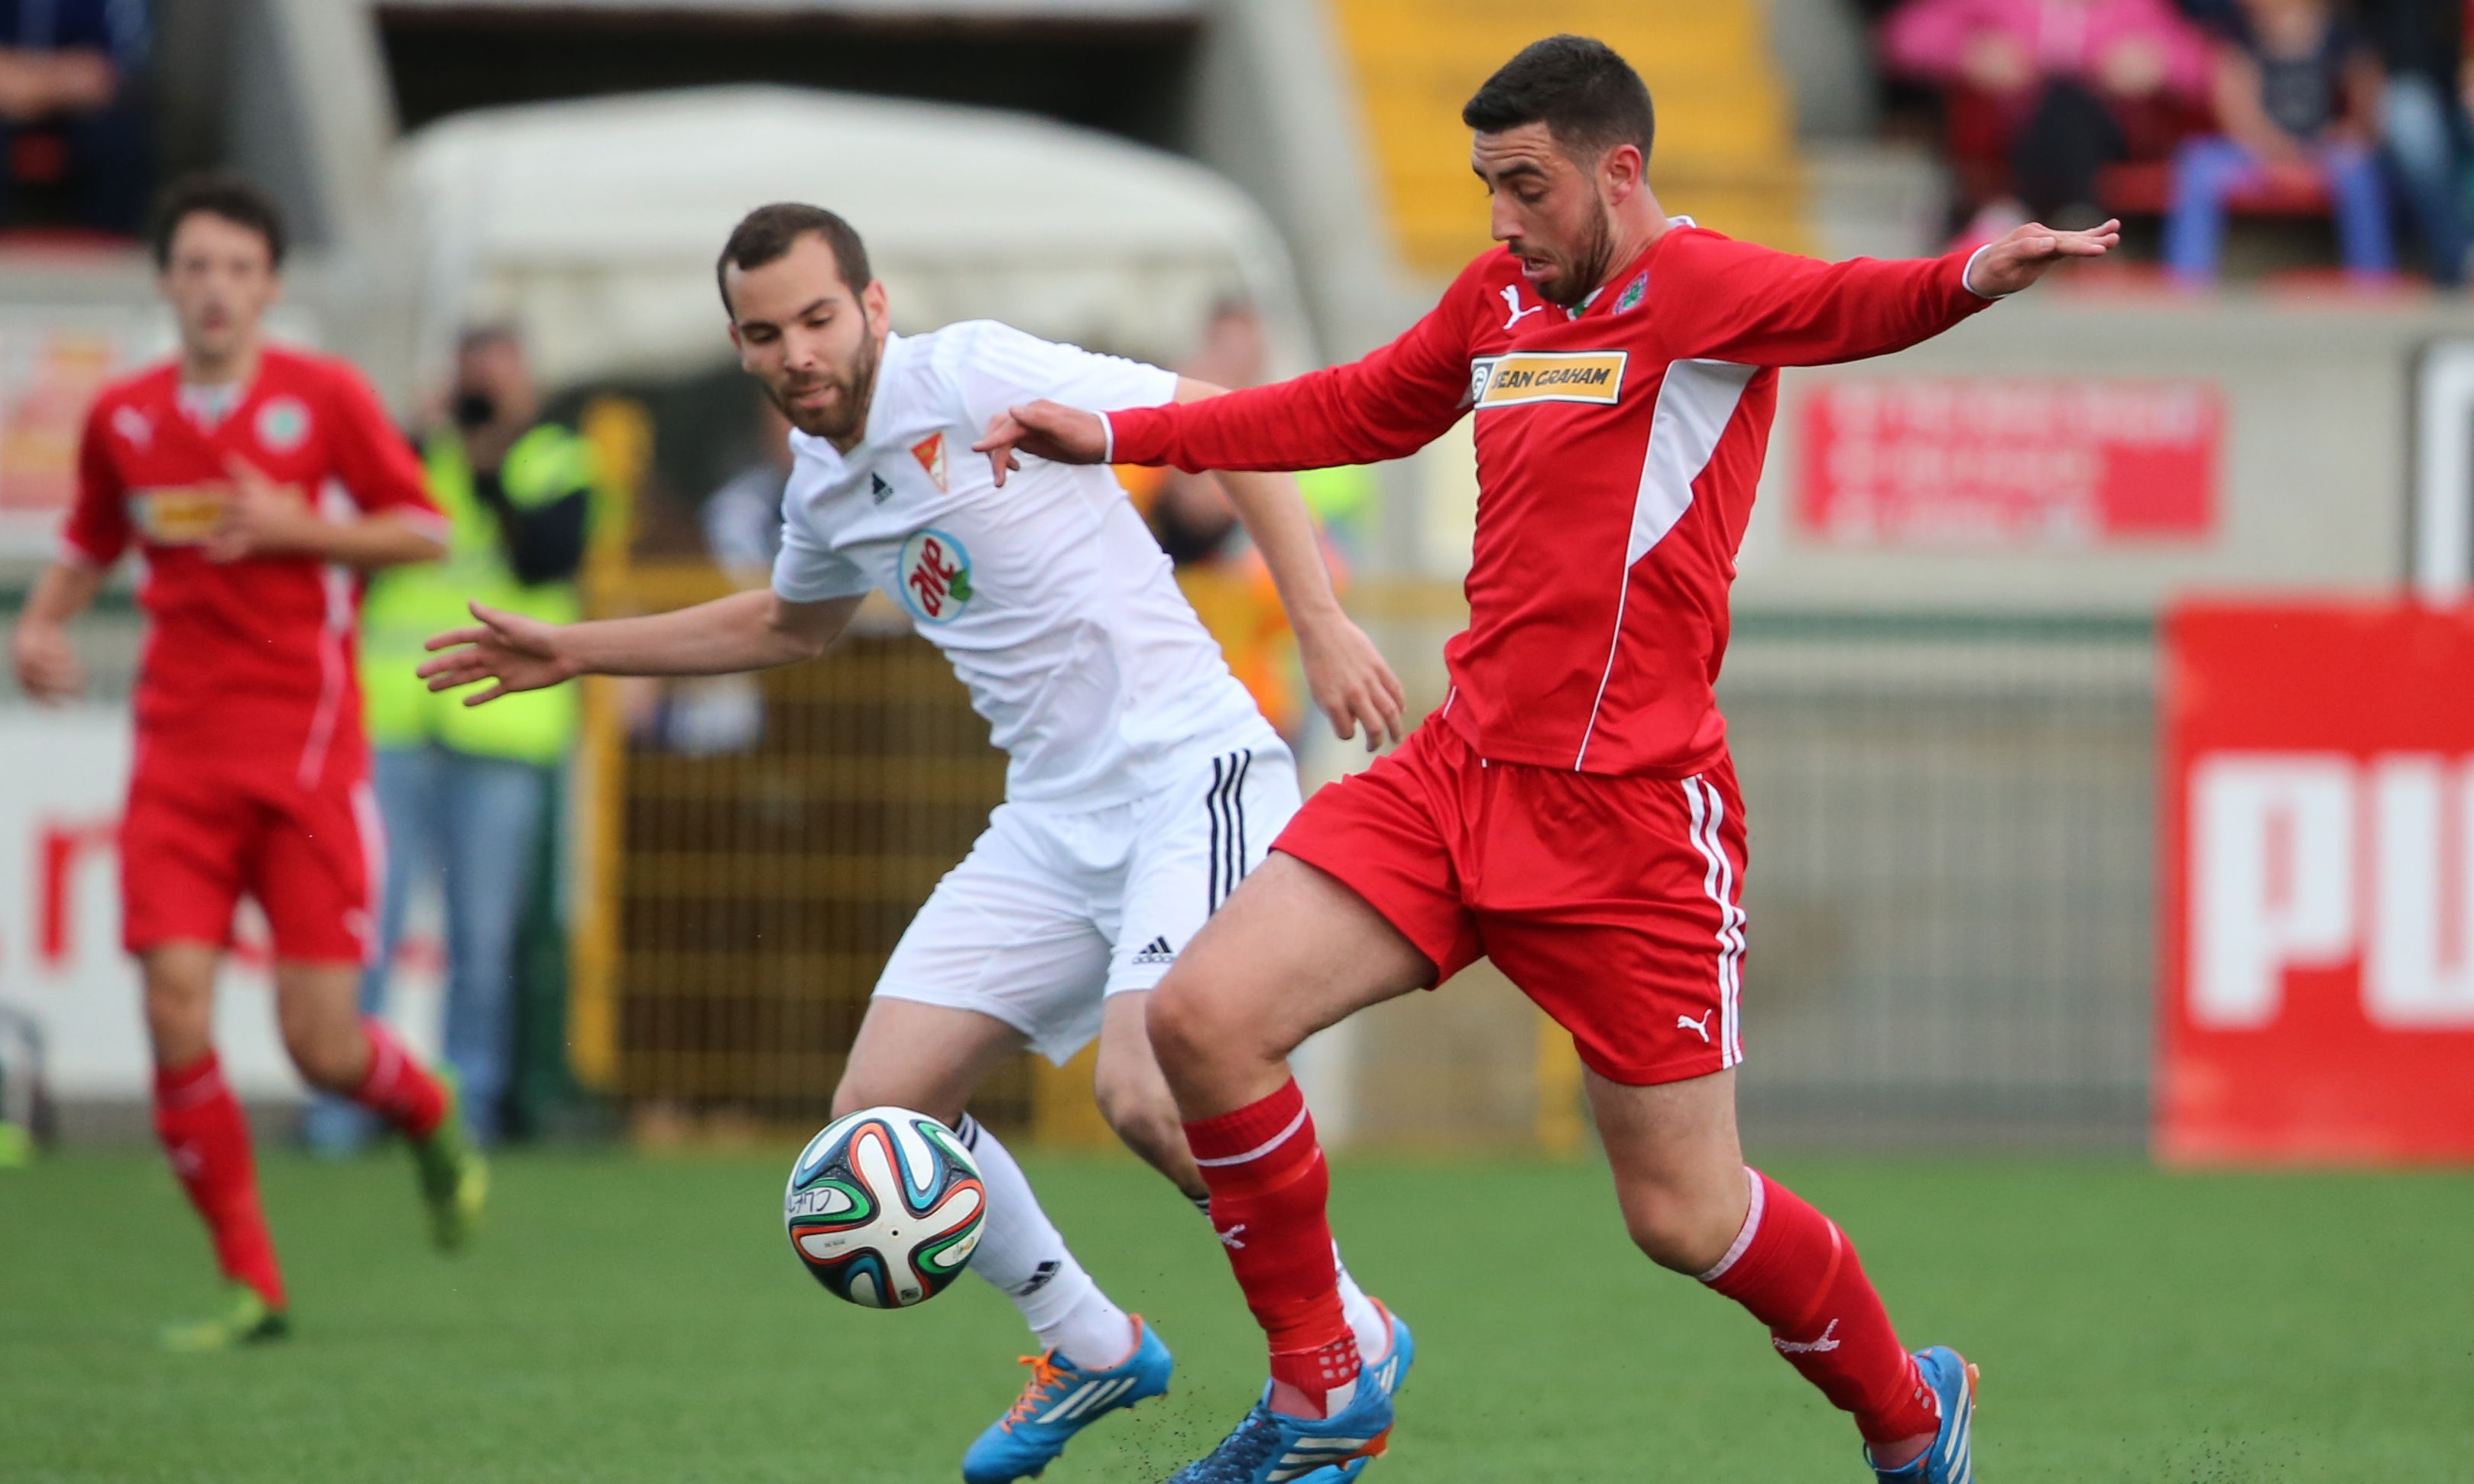 Joe Gormley (right) in action for Cliftonville in 2014.